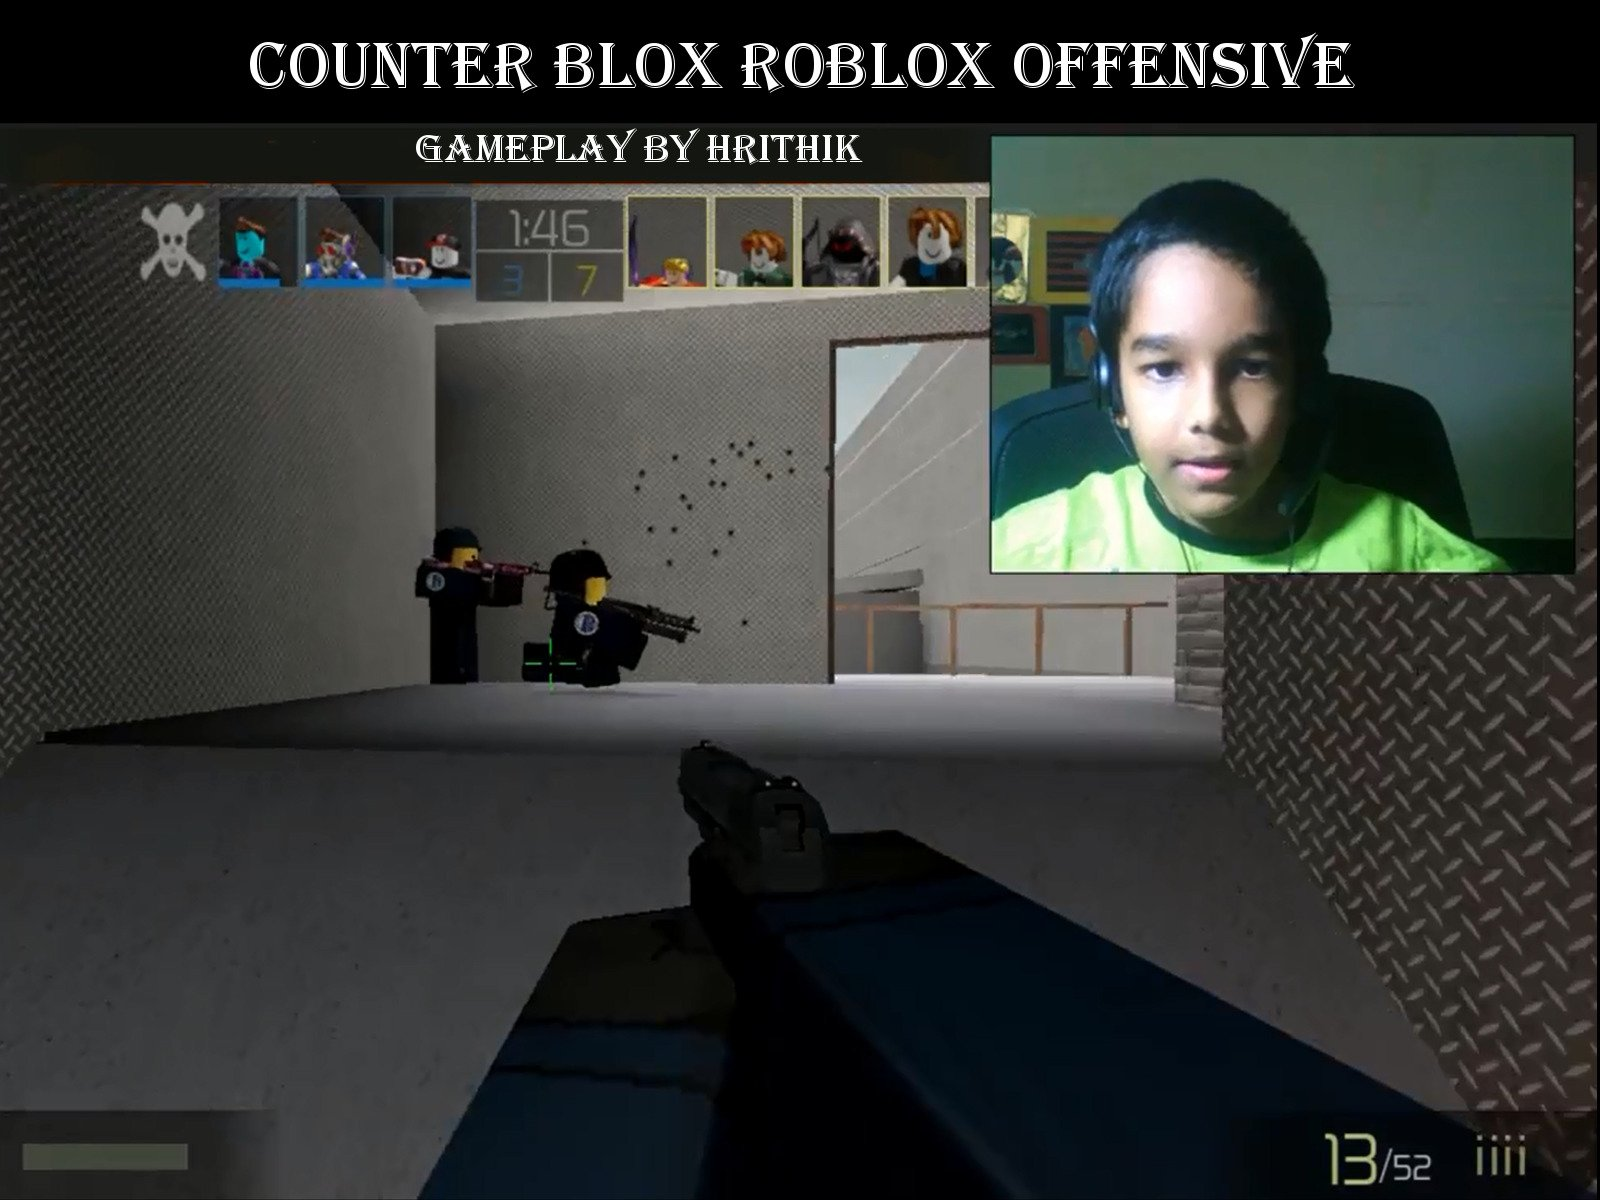 Roblox Counter Blox Roblox Offensive Spanish Watch Clip Roblox Gameplay Hrithik Prime Video